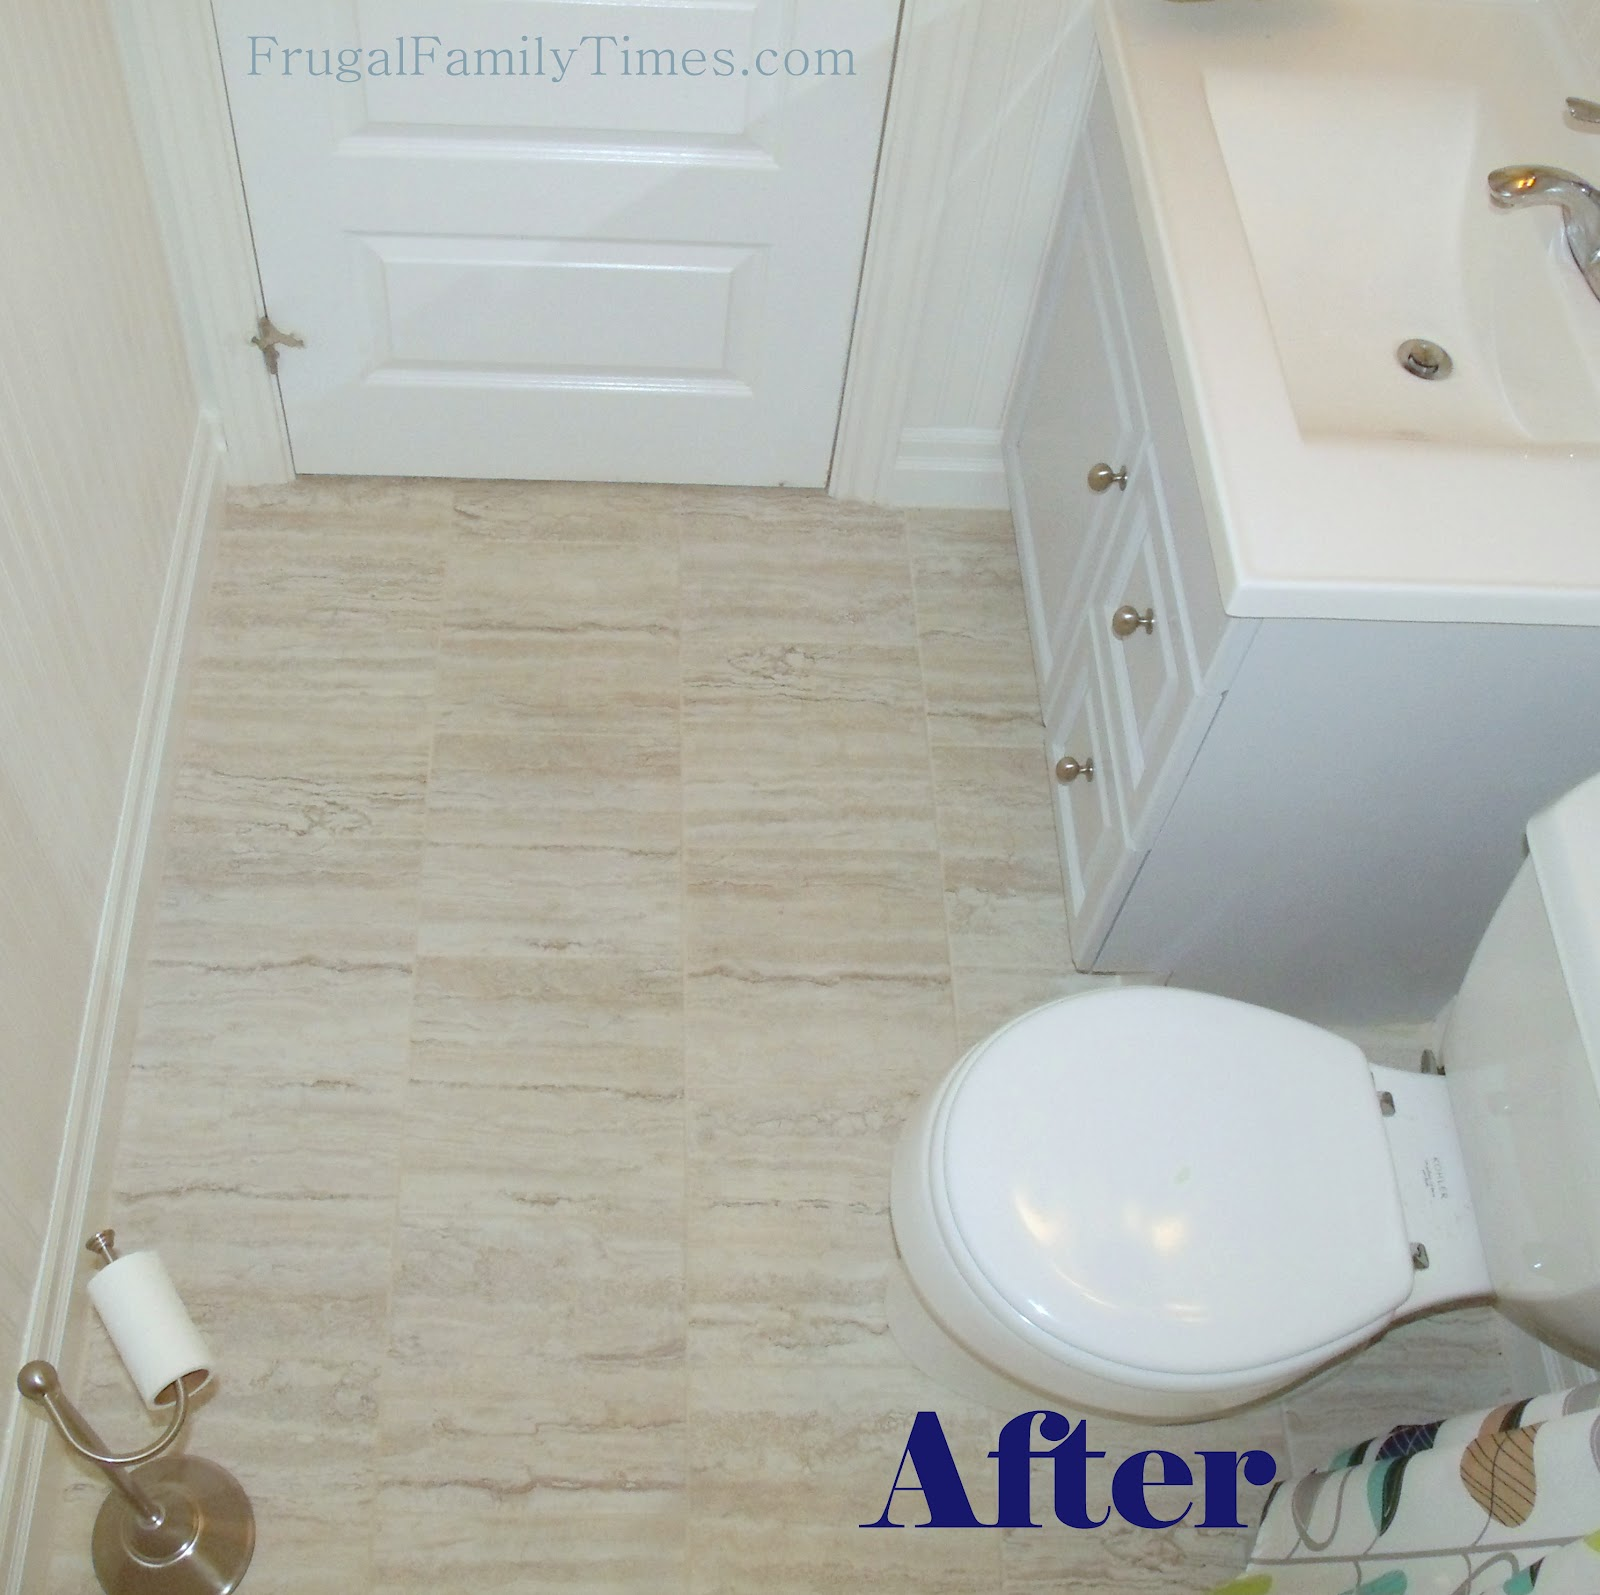 Can You Paint Over Bathroom Wall Tiles: How To Install Peel And Stick Vinyl Tile (That You Can